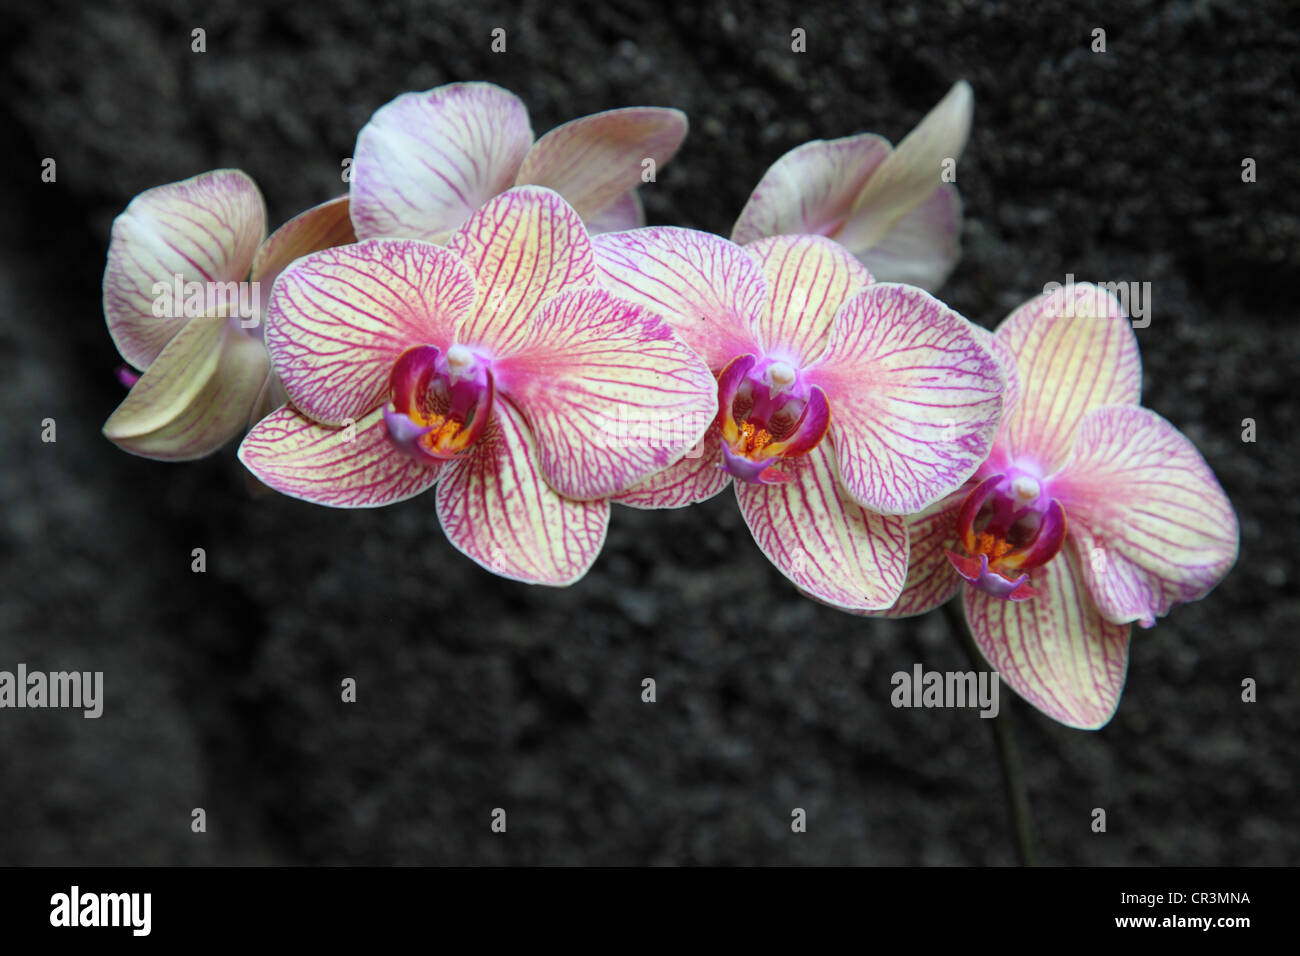 White and pink orchid - Stock Image